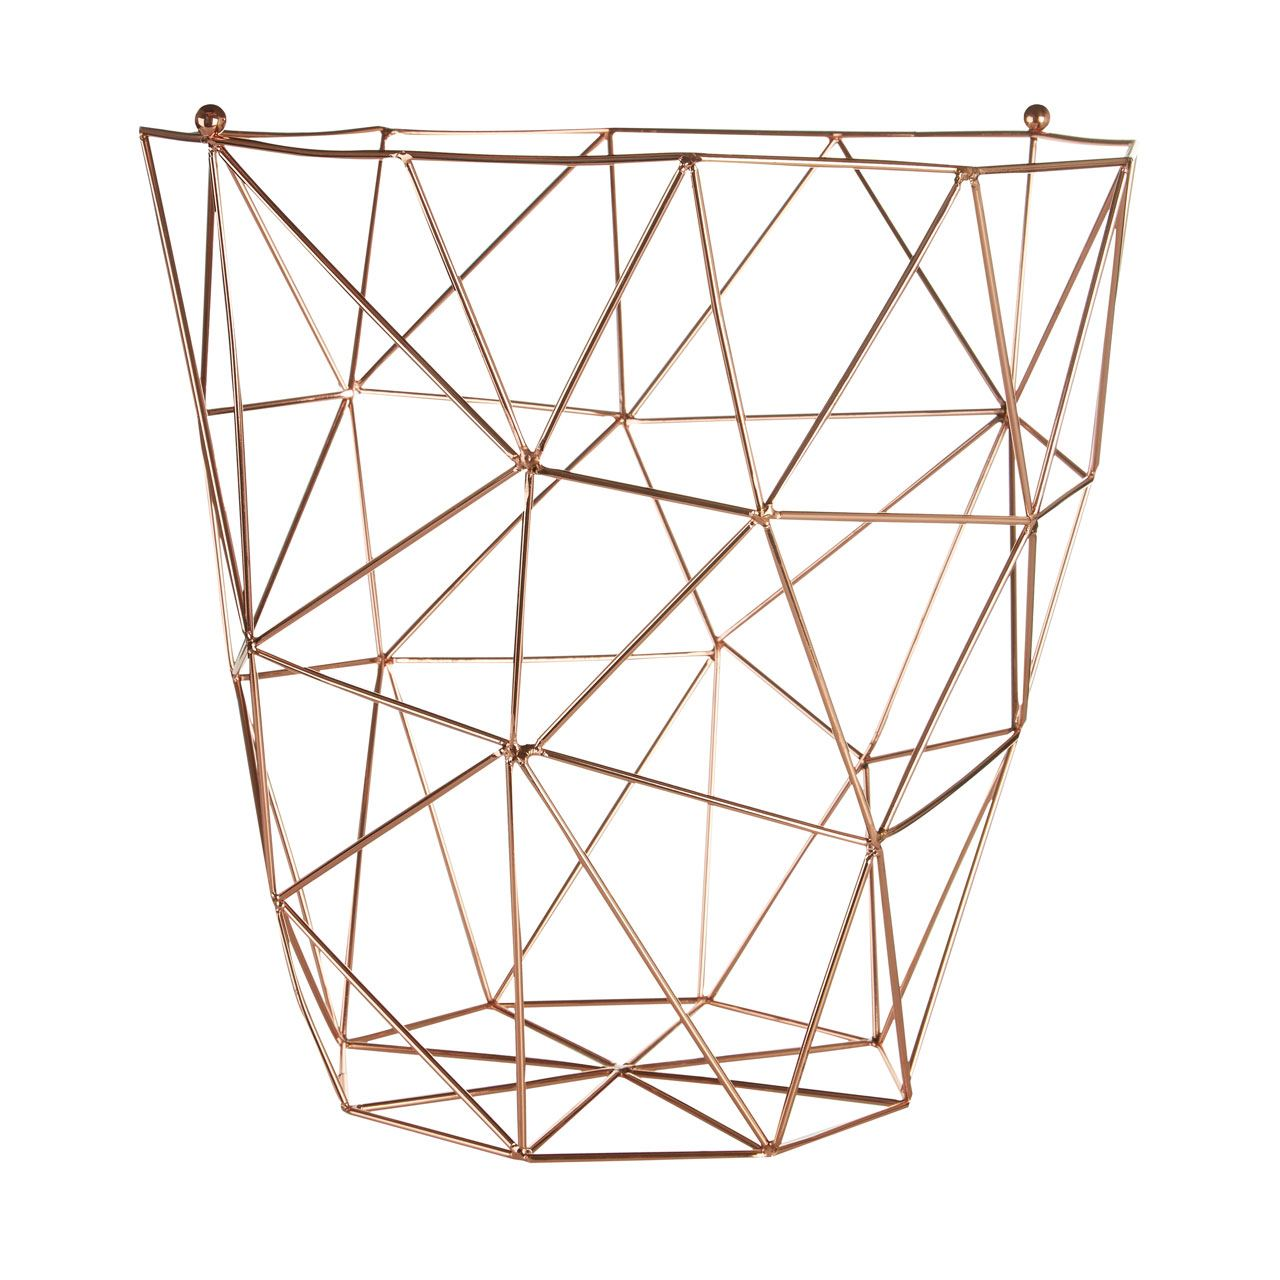 Decorative Metal Waste Baskets Vertex Kitchen Accessory Set Basket Utensil Trivet Copper